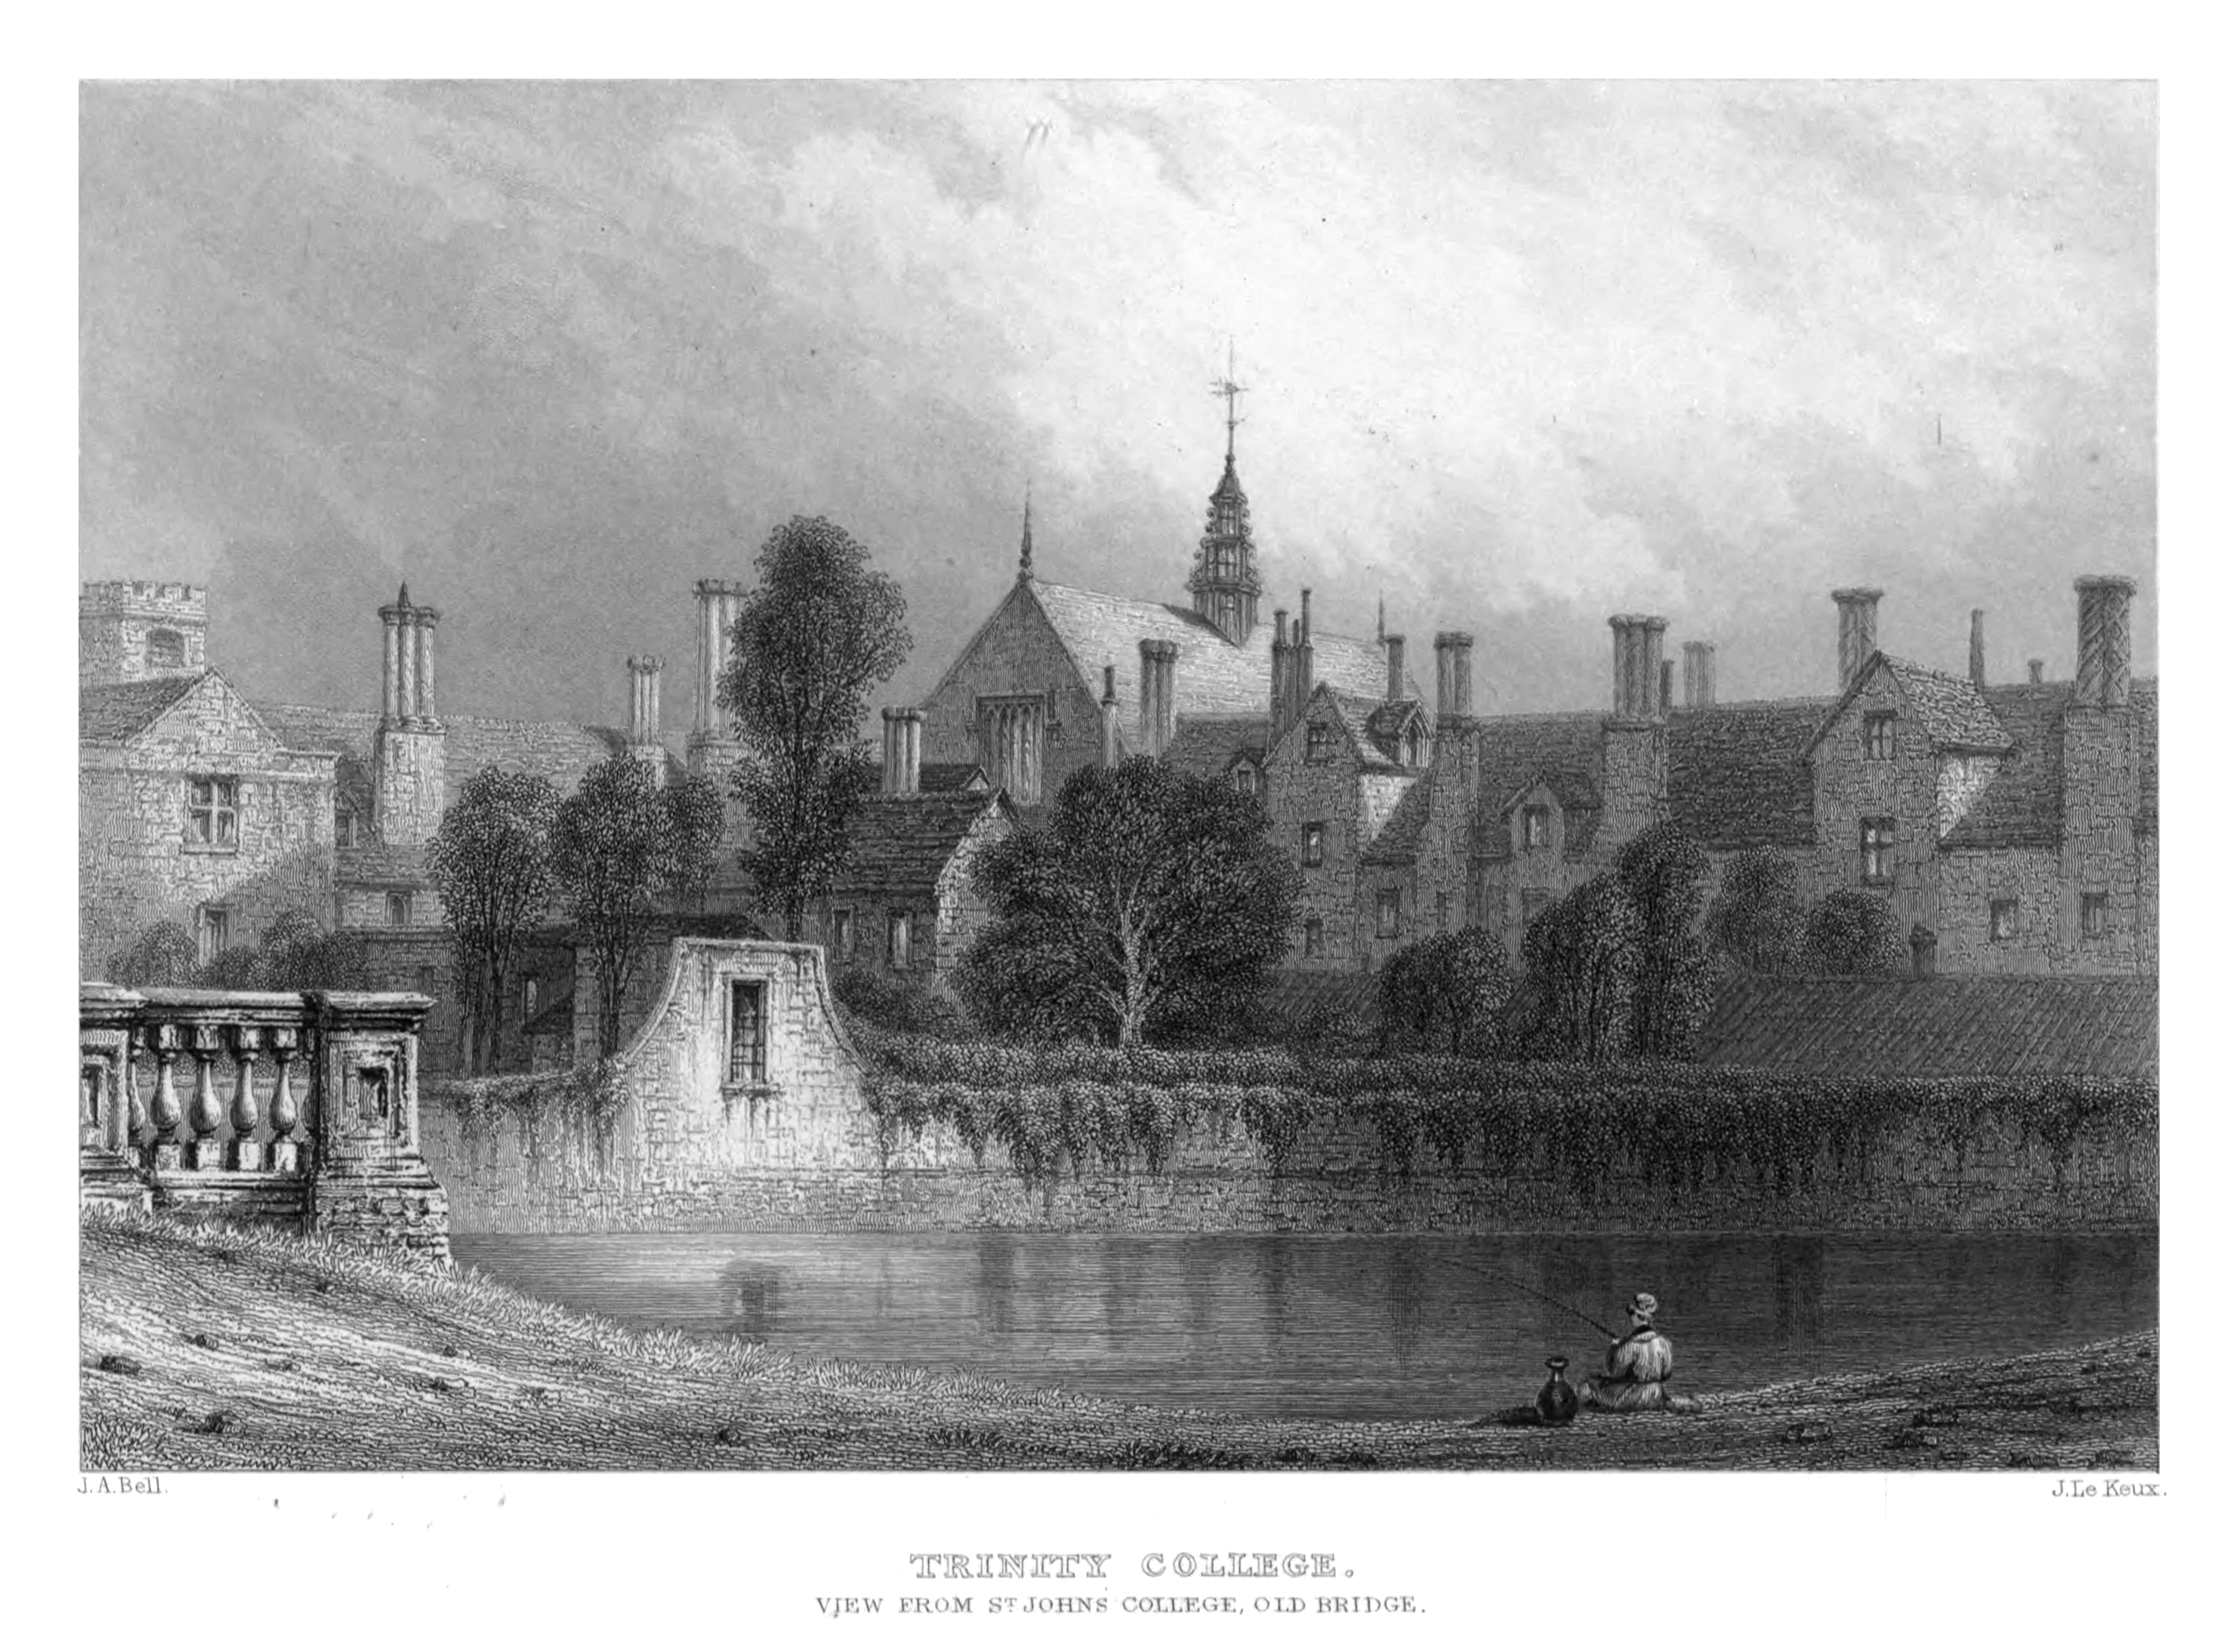 """""""Trinity College. View from St John's College, Old Bridge"""" by John Le Keux, circa 1840. This steel engraving was much used for decorative topographical prints such as this."""